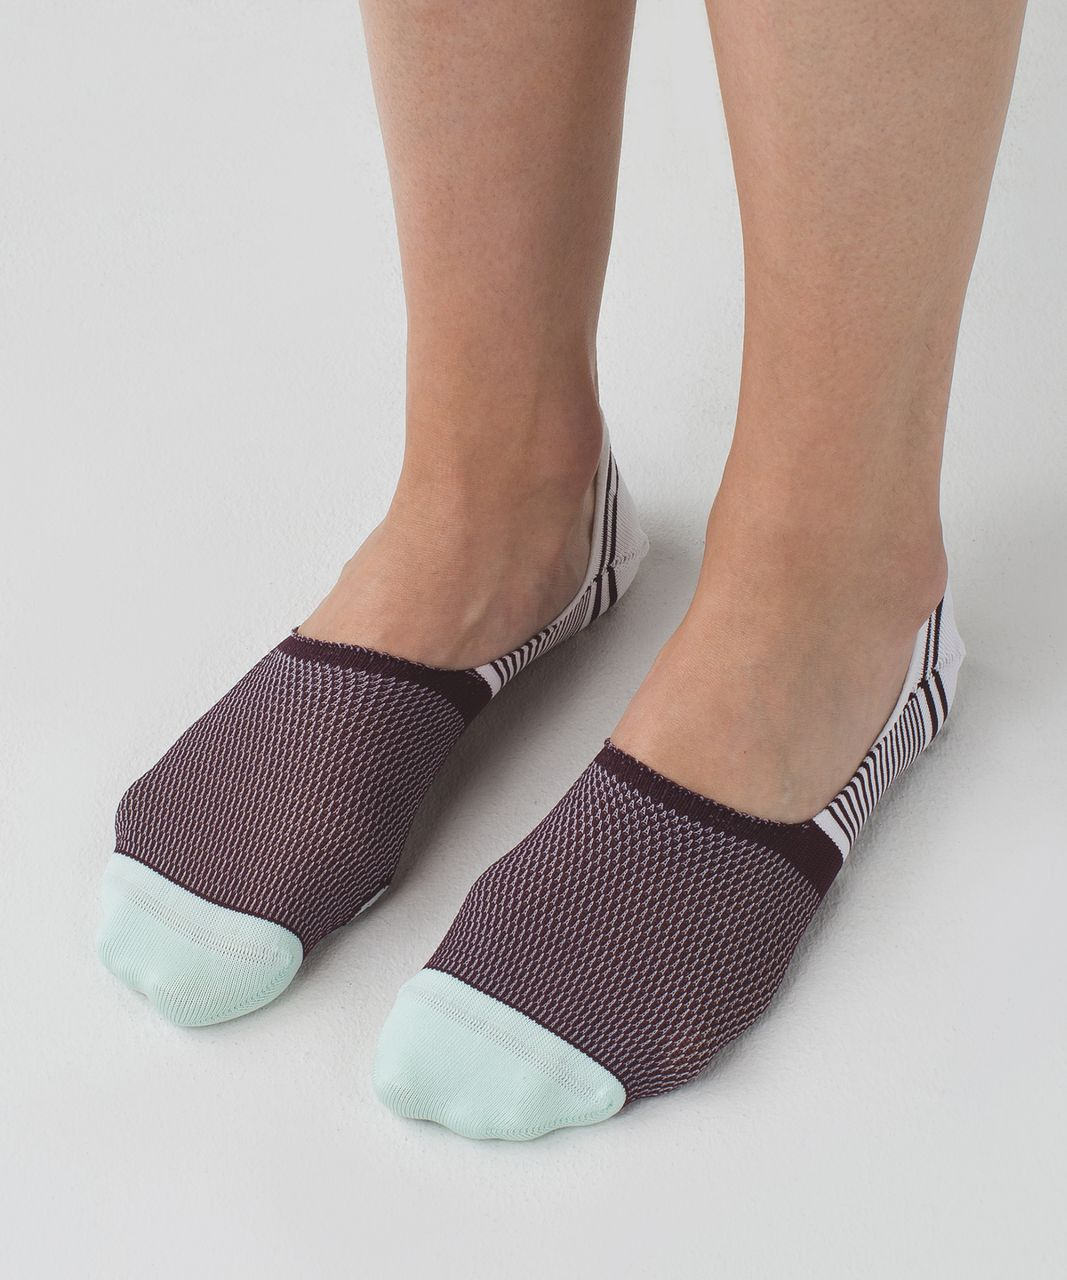 Lululemon Secret Sock - Bordeaux Drama / White / Sea Mist